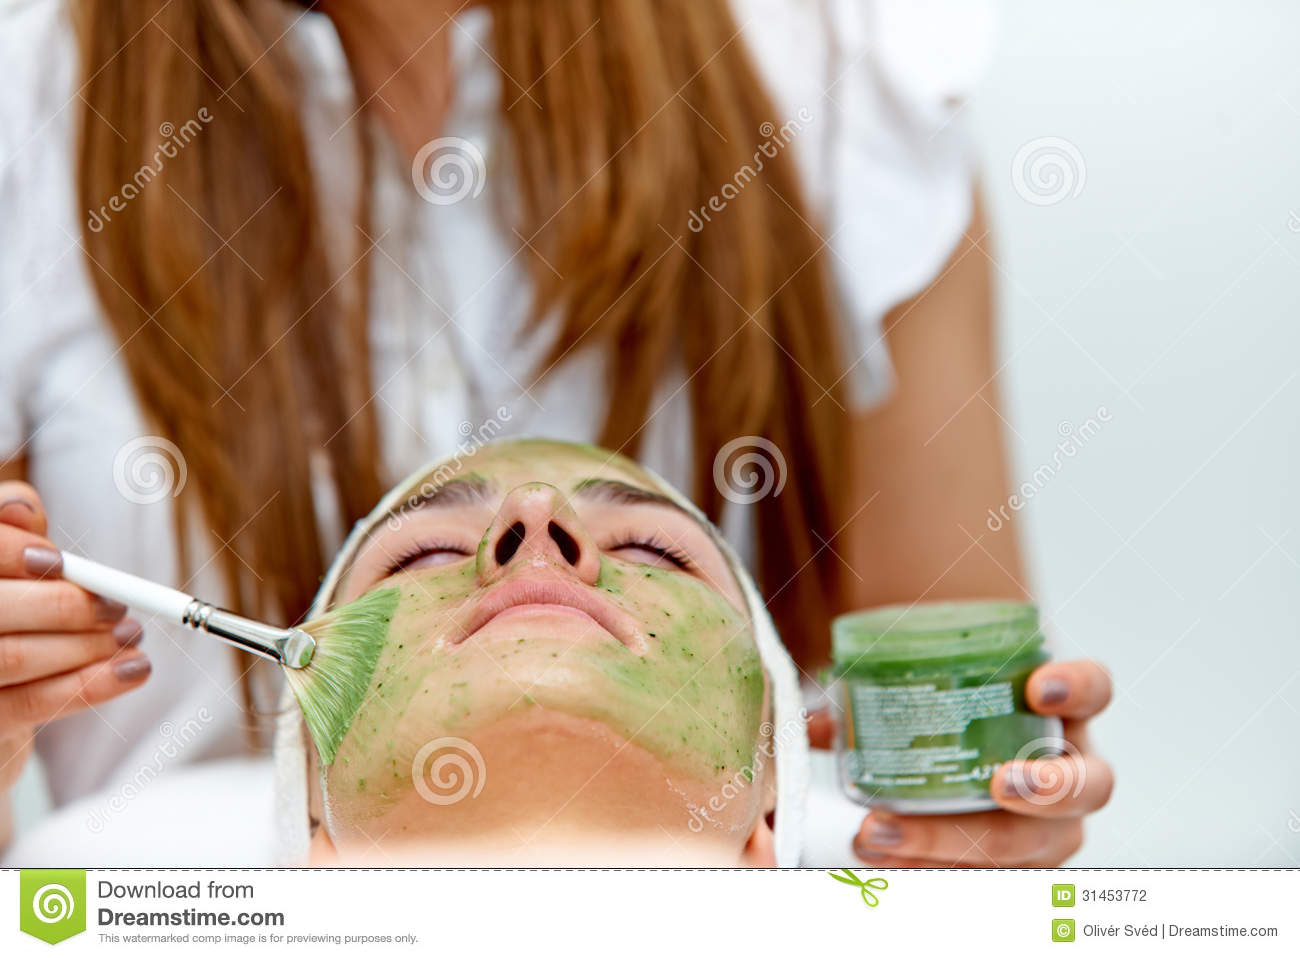 Healthcare treatment at the beauty salon stock photography for A trial beauty treatment salon